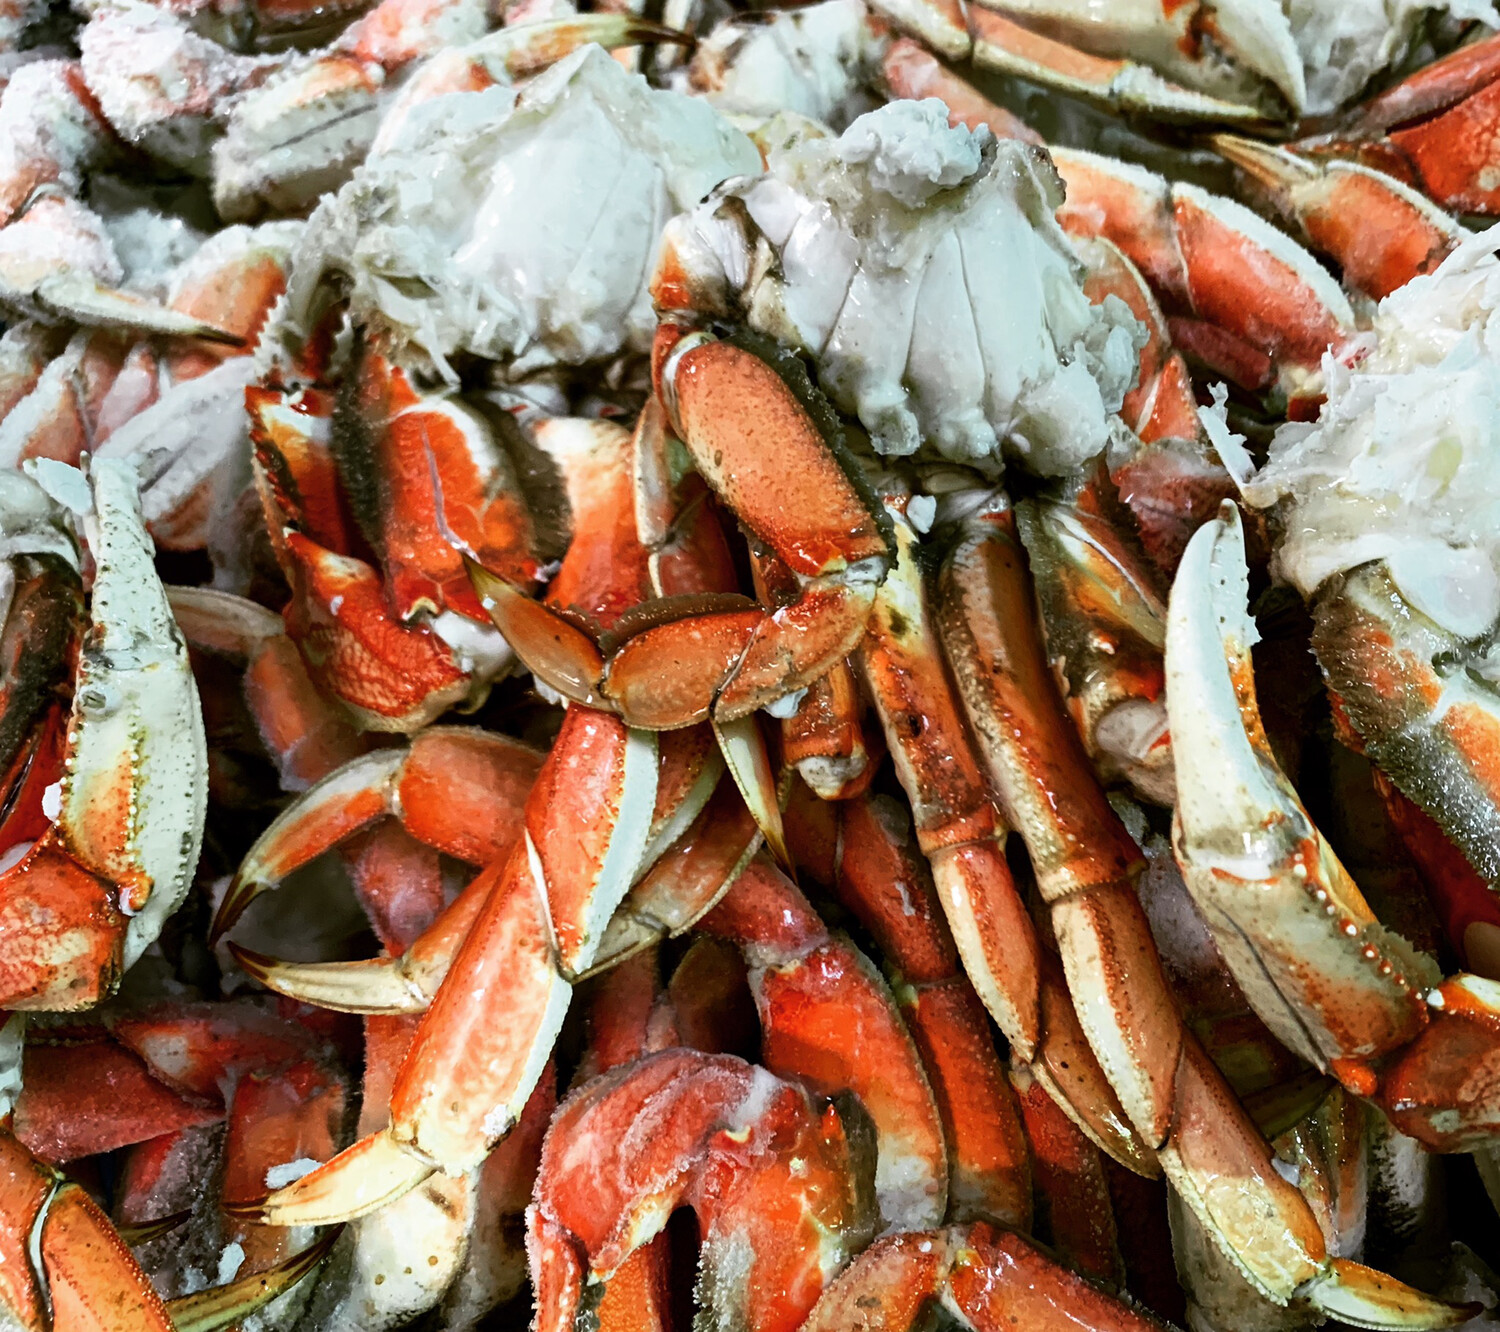 DUNGENESS CRAB CLUSTERS 2.25 Pounds Bag